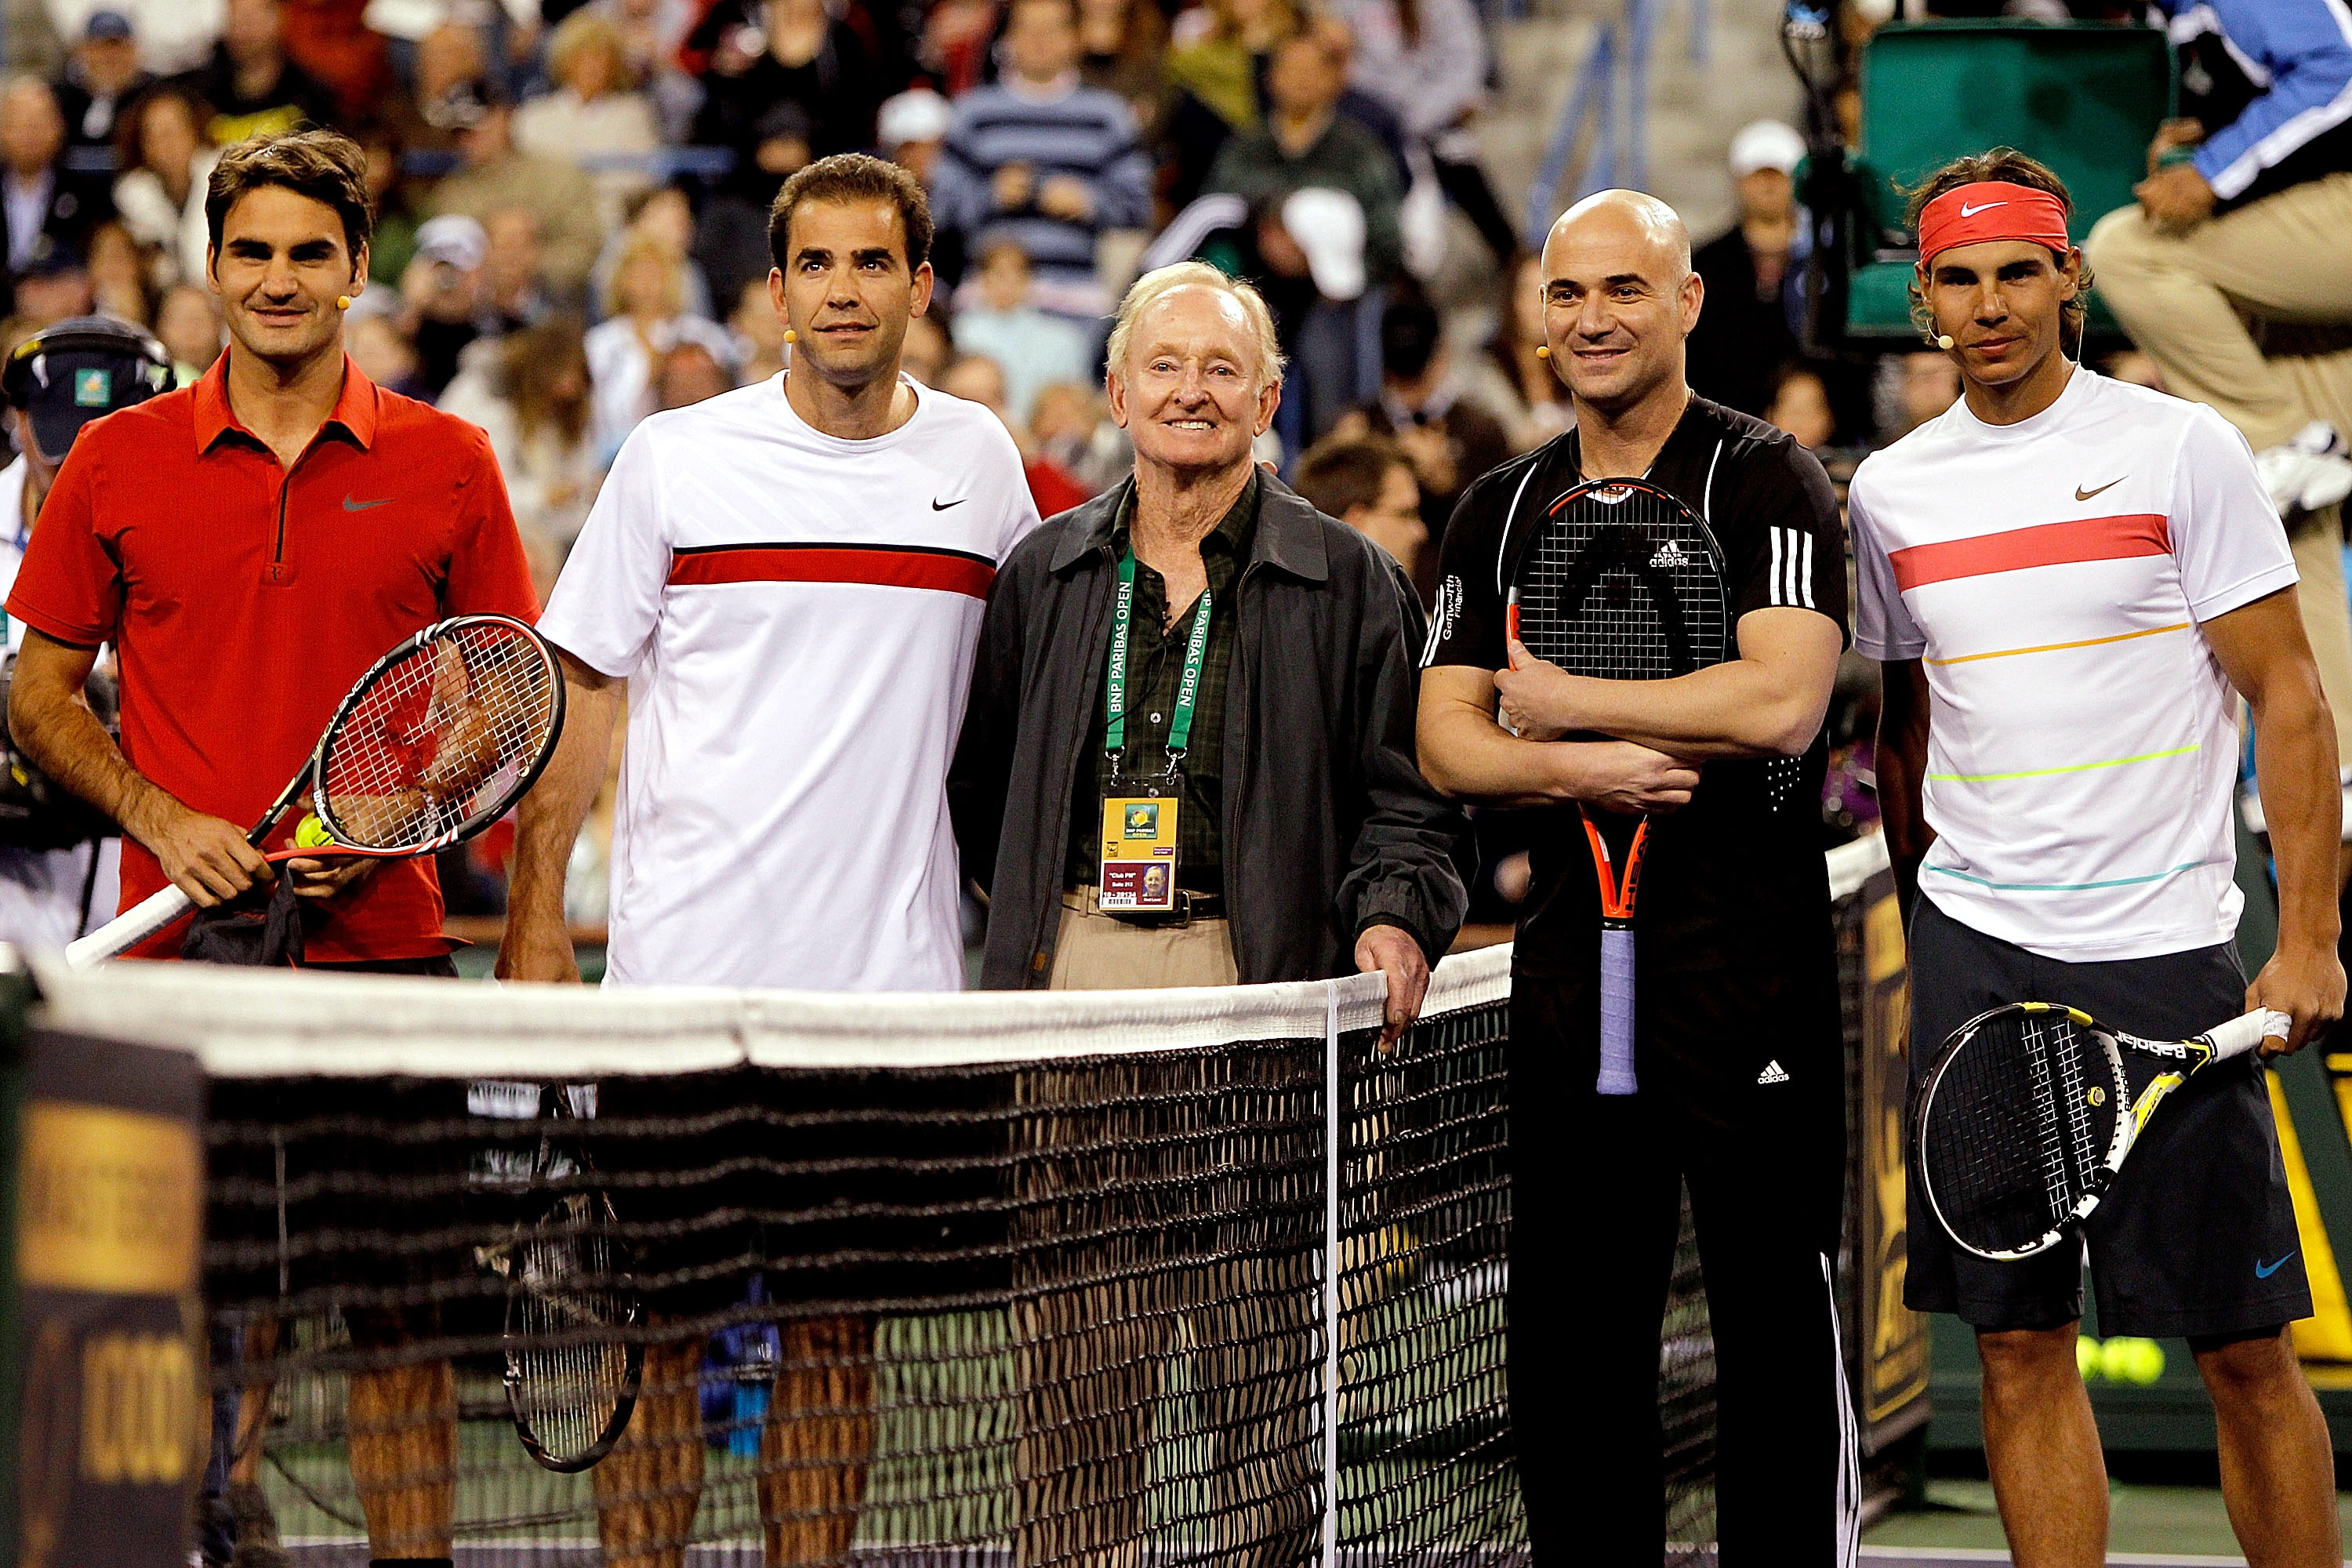 Laver (centre) with the other greats.